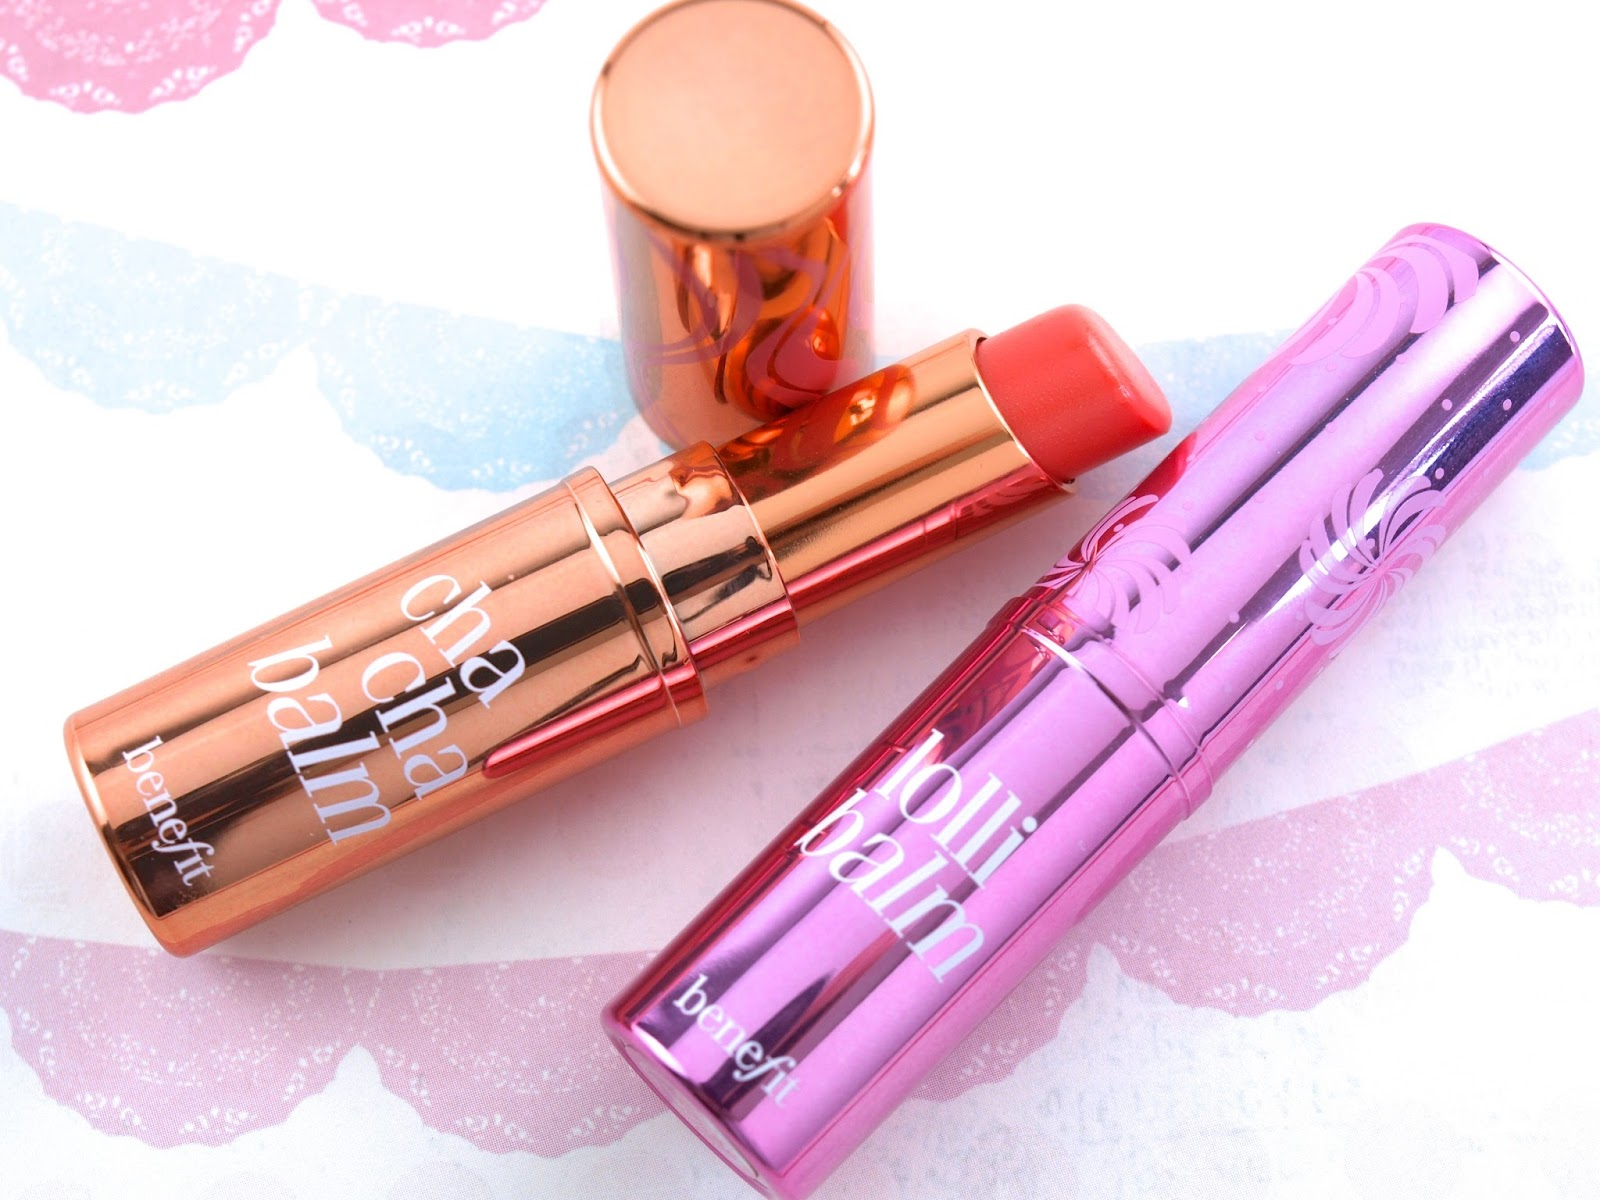 Benefit Cha Cha Balm & Lollibalm Hydrating Tinted Lip Balm: Review and Swatches